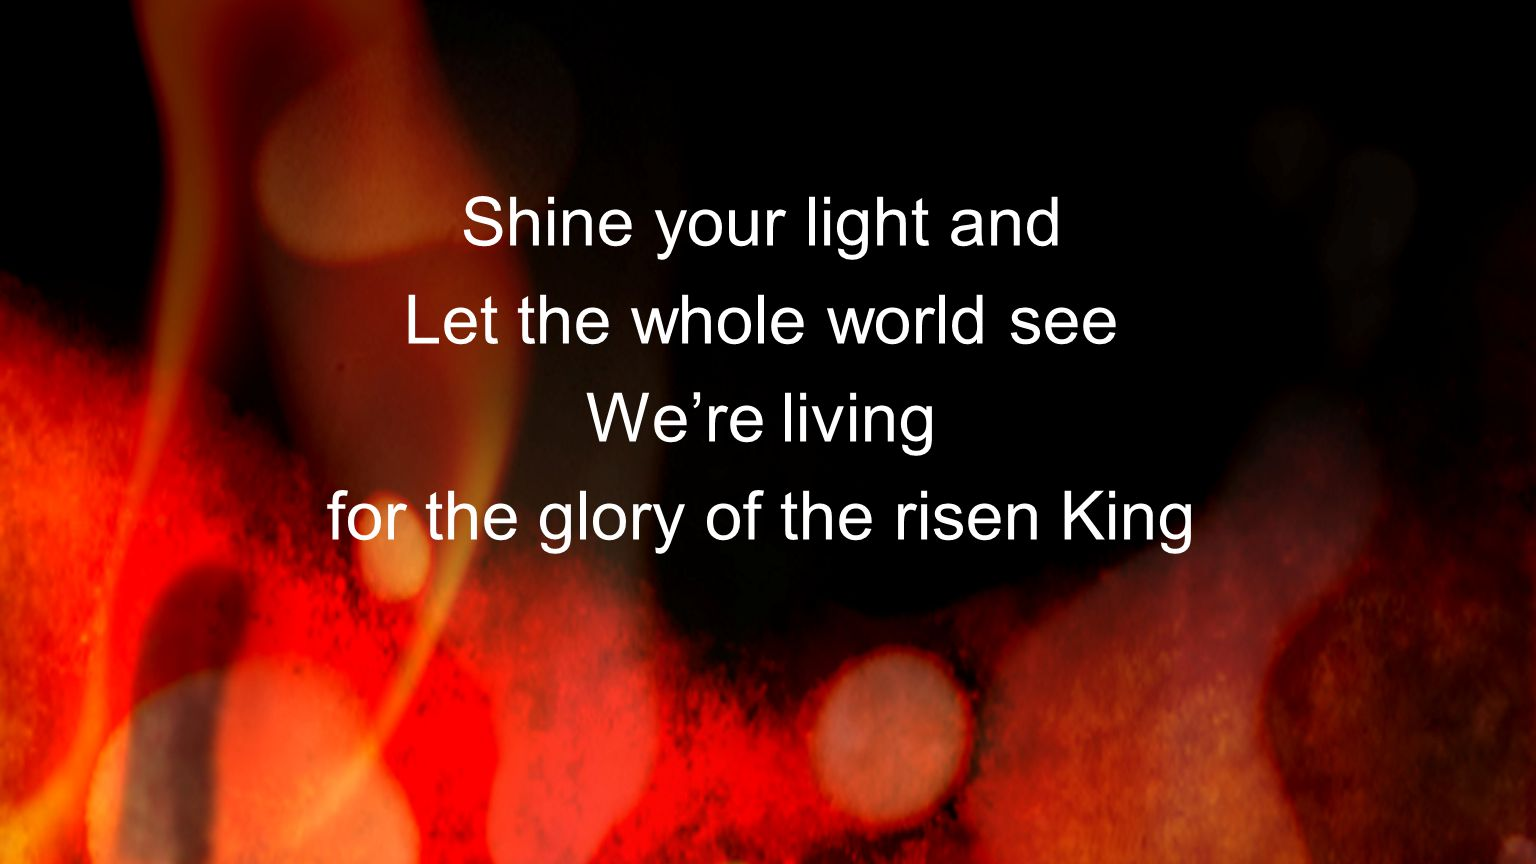 Shine your light and Let the whole world see We're living for the glory of the risen King